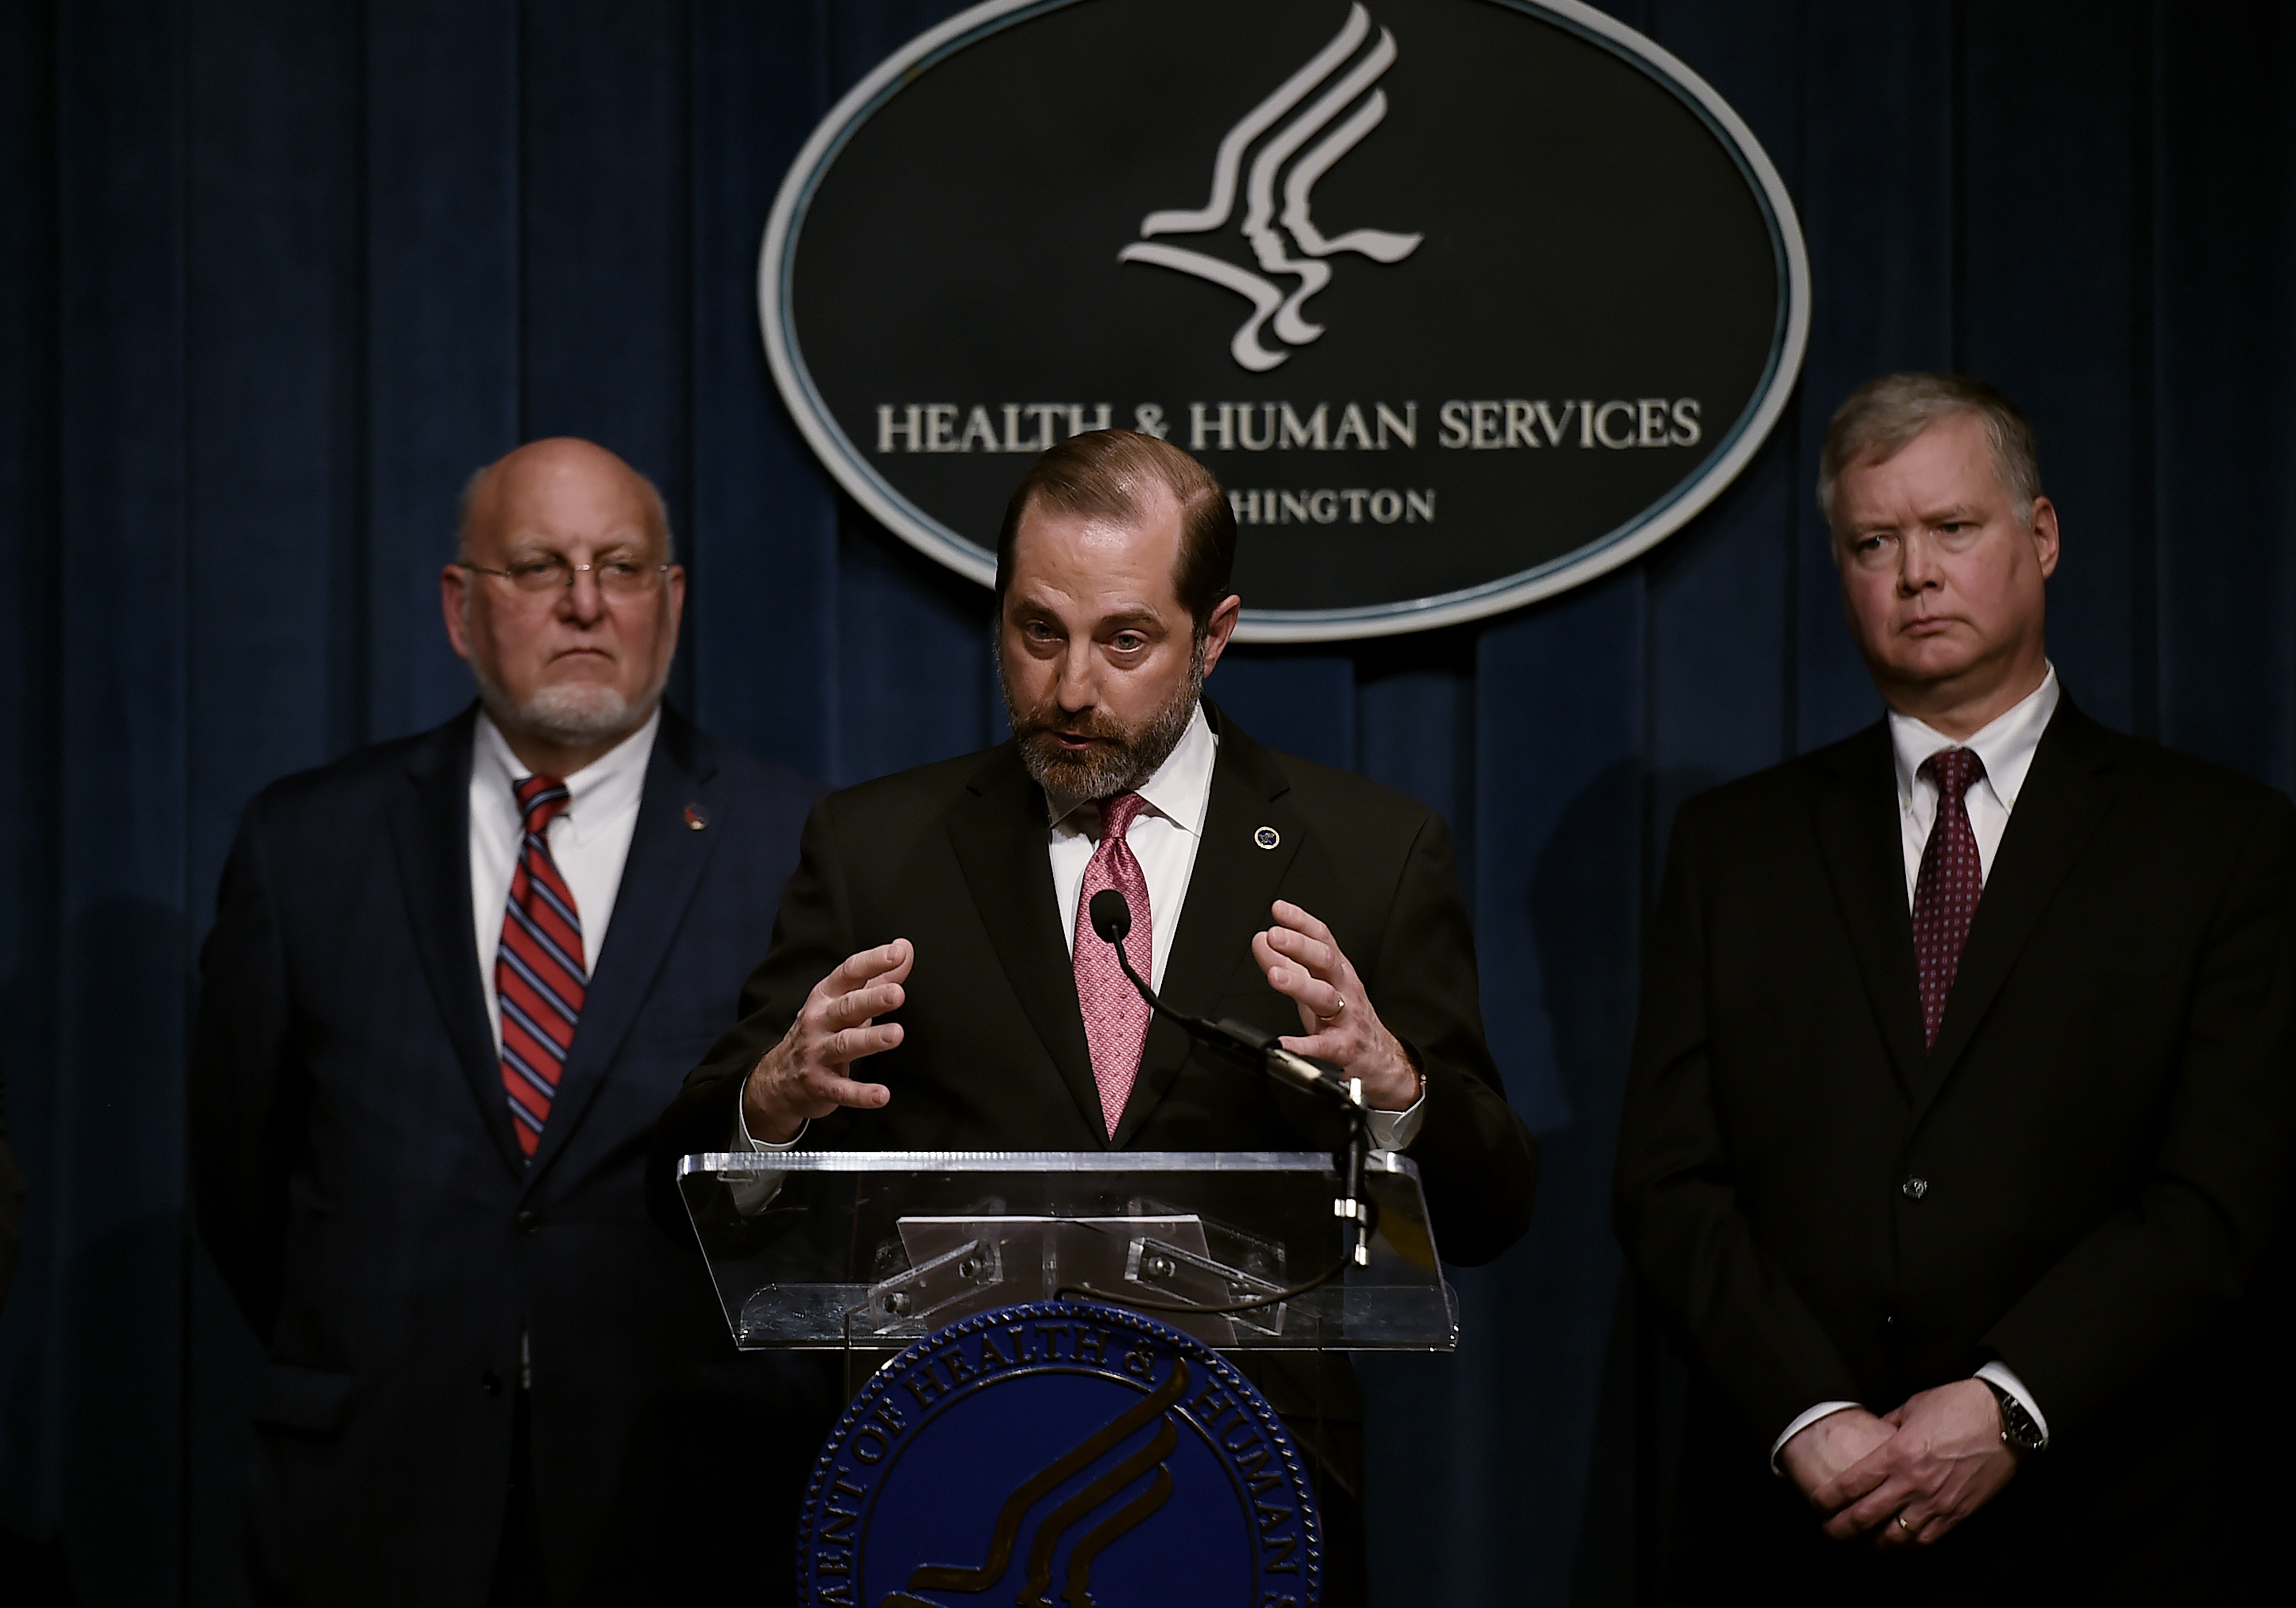 US Health and Human Services Secretary Alex Azar speaks as Centers for Disease Control and Prevention (CDC) Director Robert R. Redfield (left) and Deputy Secretary of State Stephen Biegun (right) listen during a news conference on Friday in Washington.